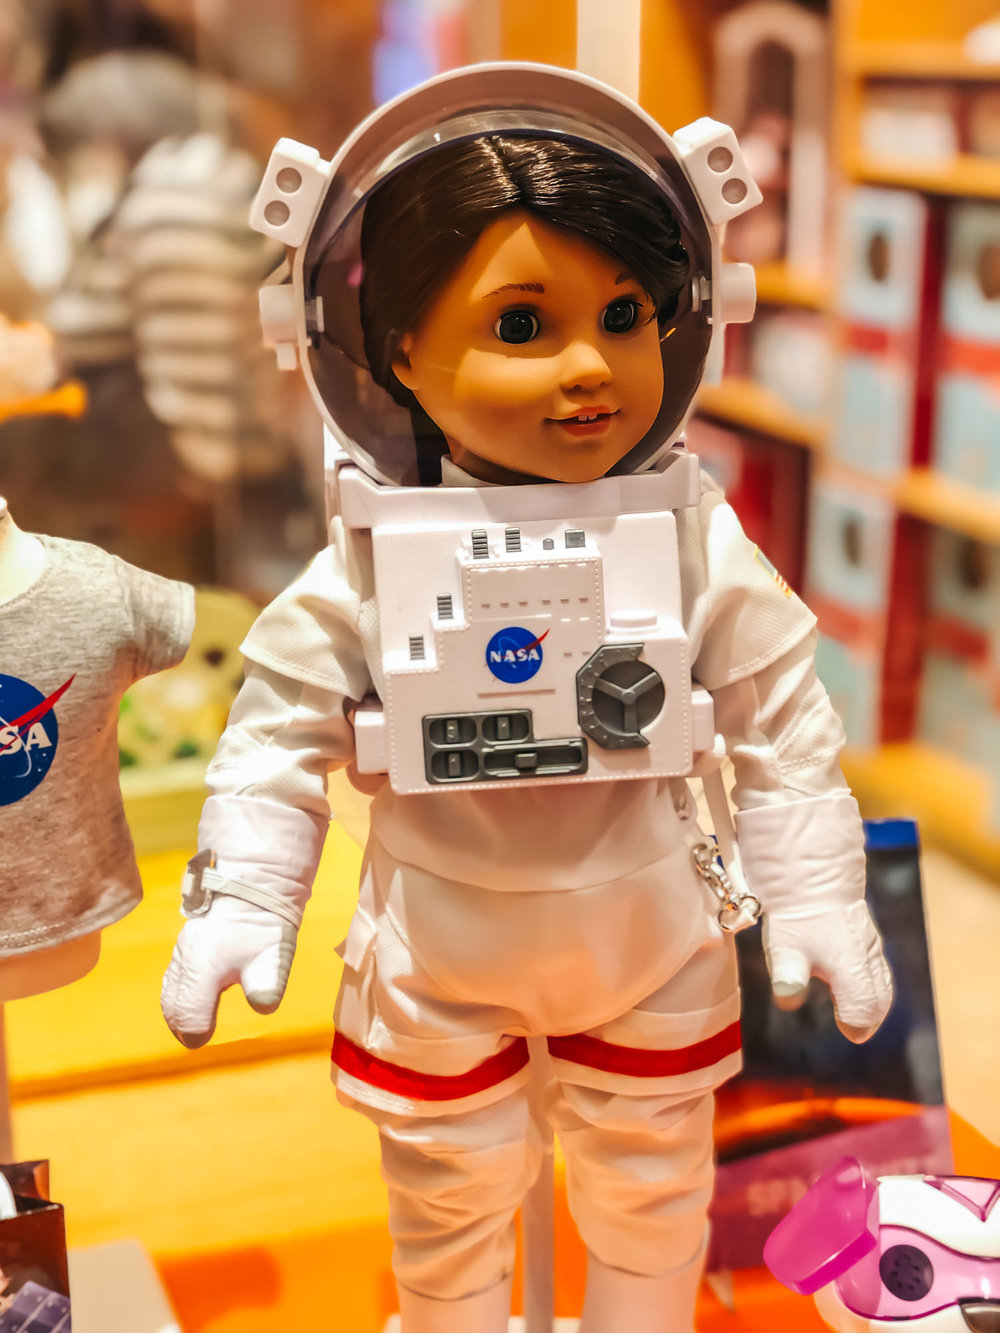 Astronaut Doll at the American Girl Place